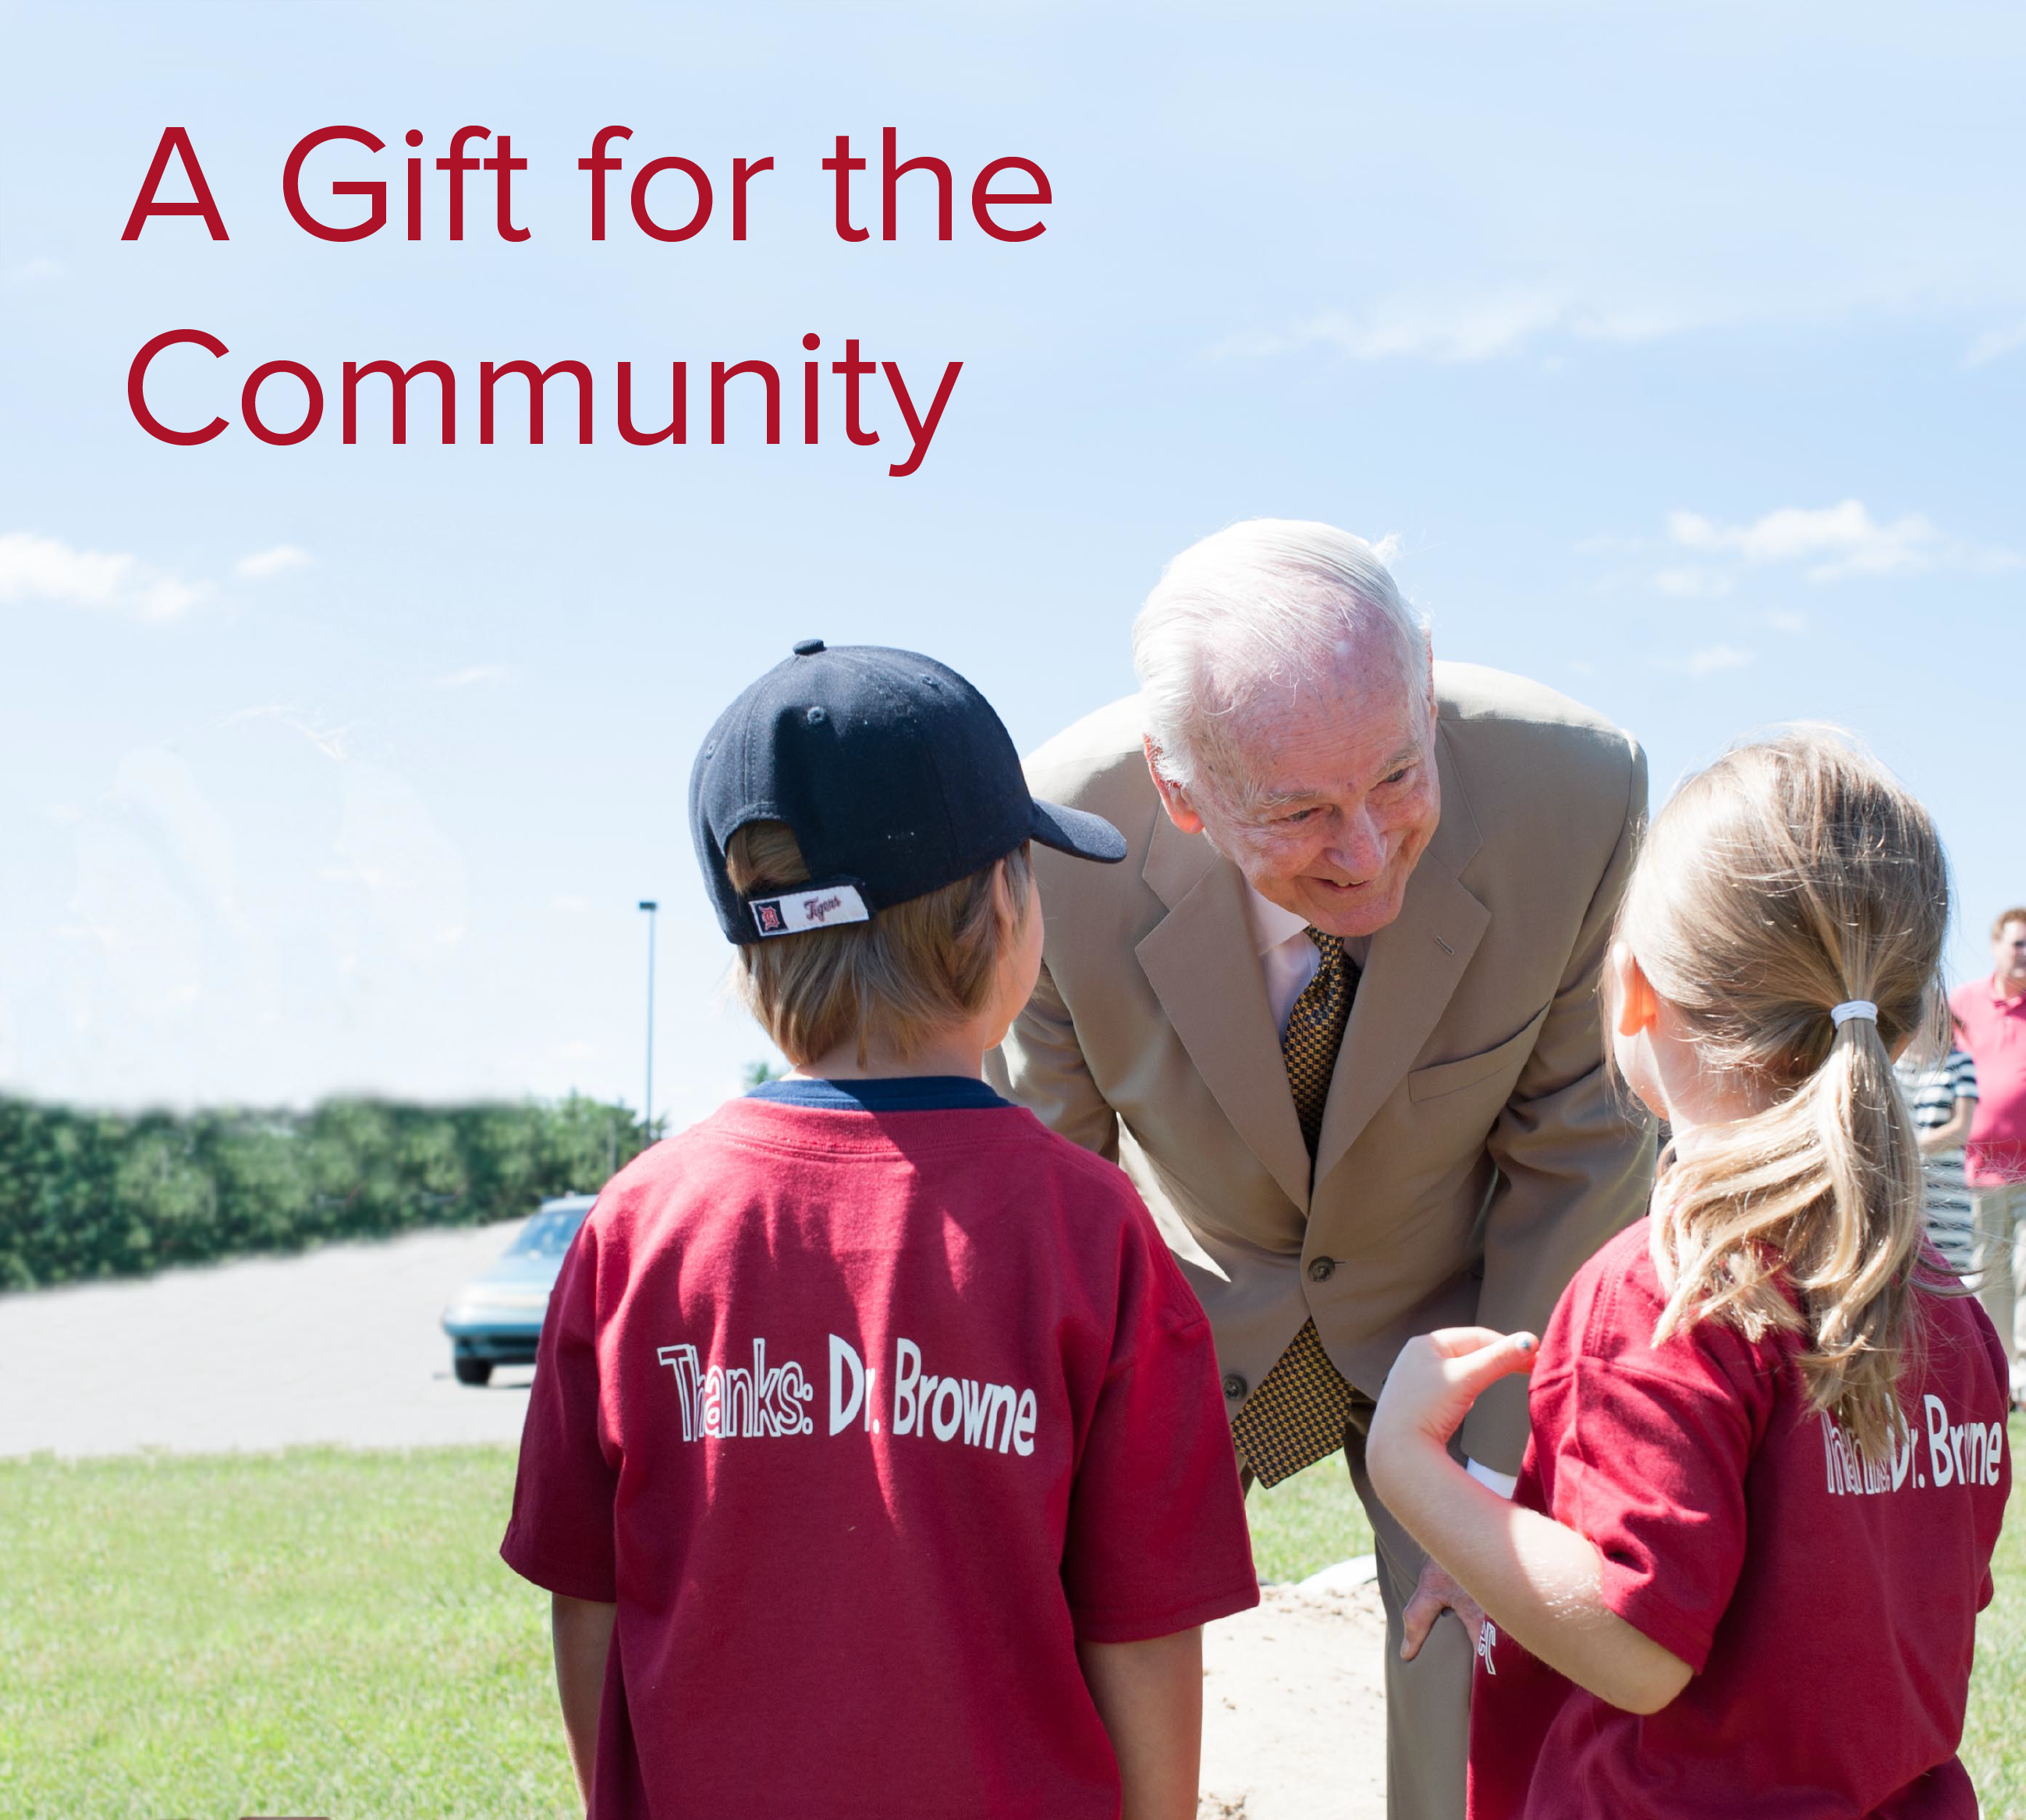 Robert W. Browne talking to two young children with text that reads A Gift for the Community